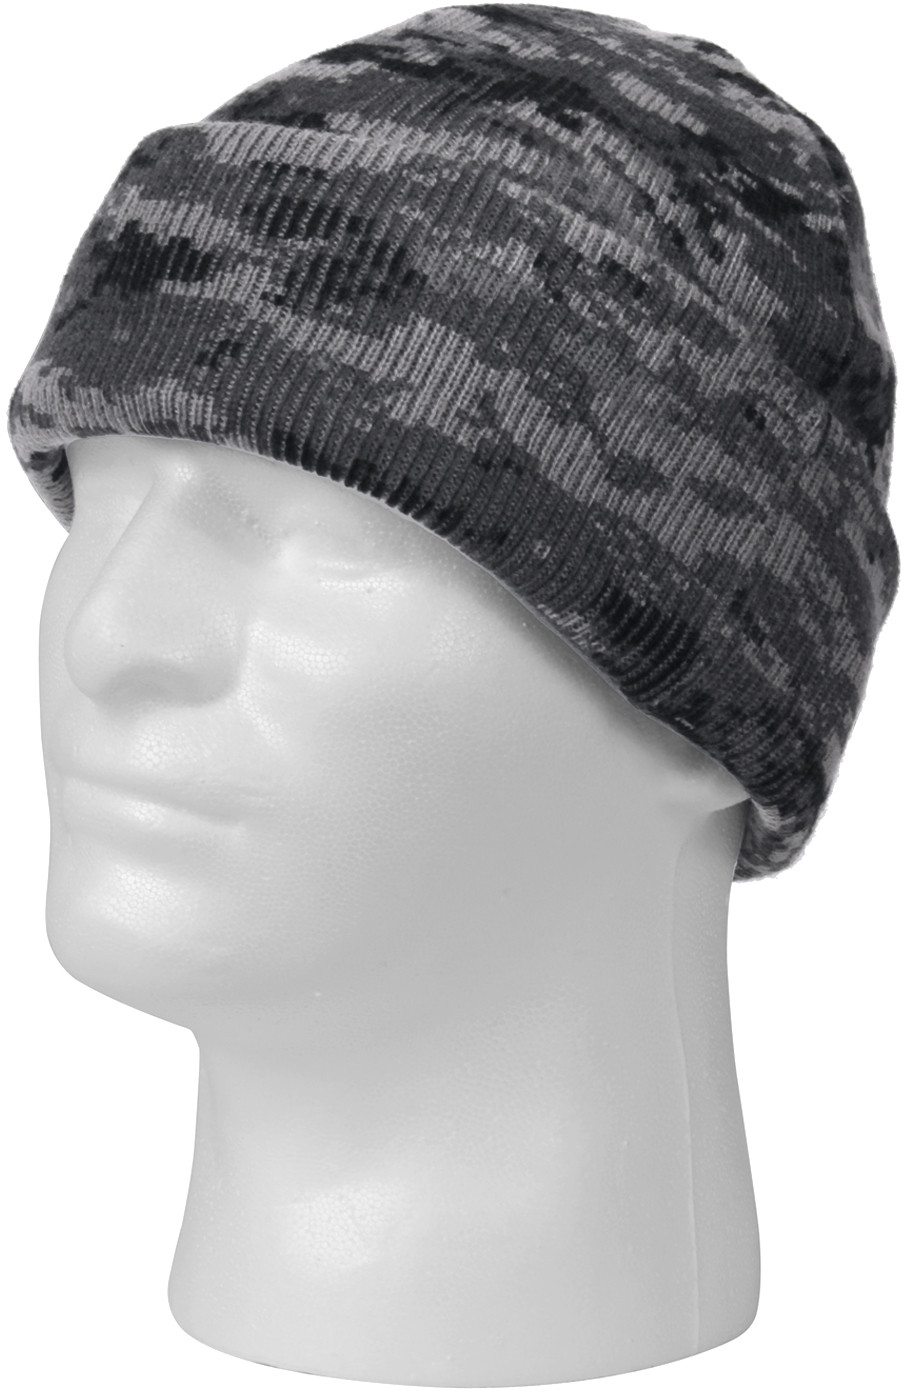 Subdued Urban Digital Camouflage Deluxe Knitted Winter Hat Acrylic ... 47ae884d1